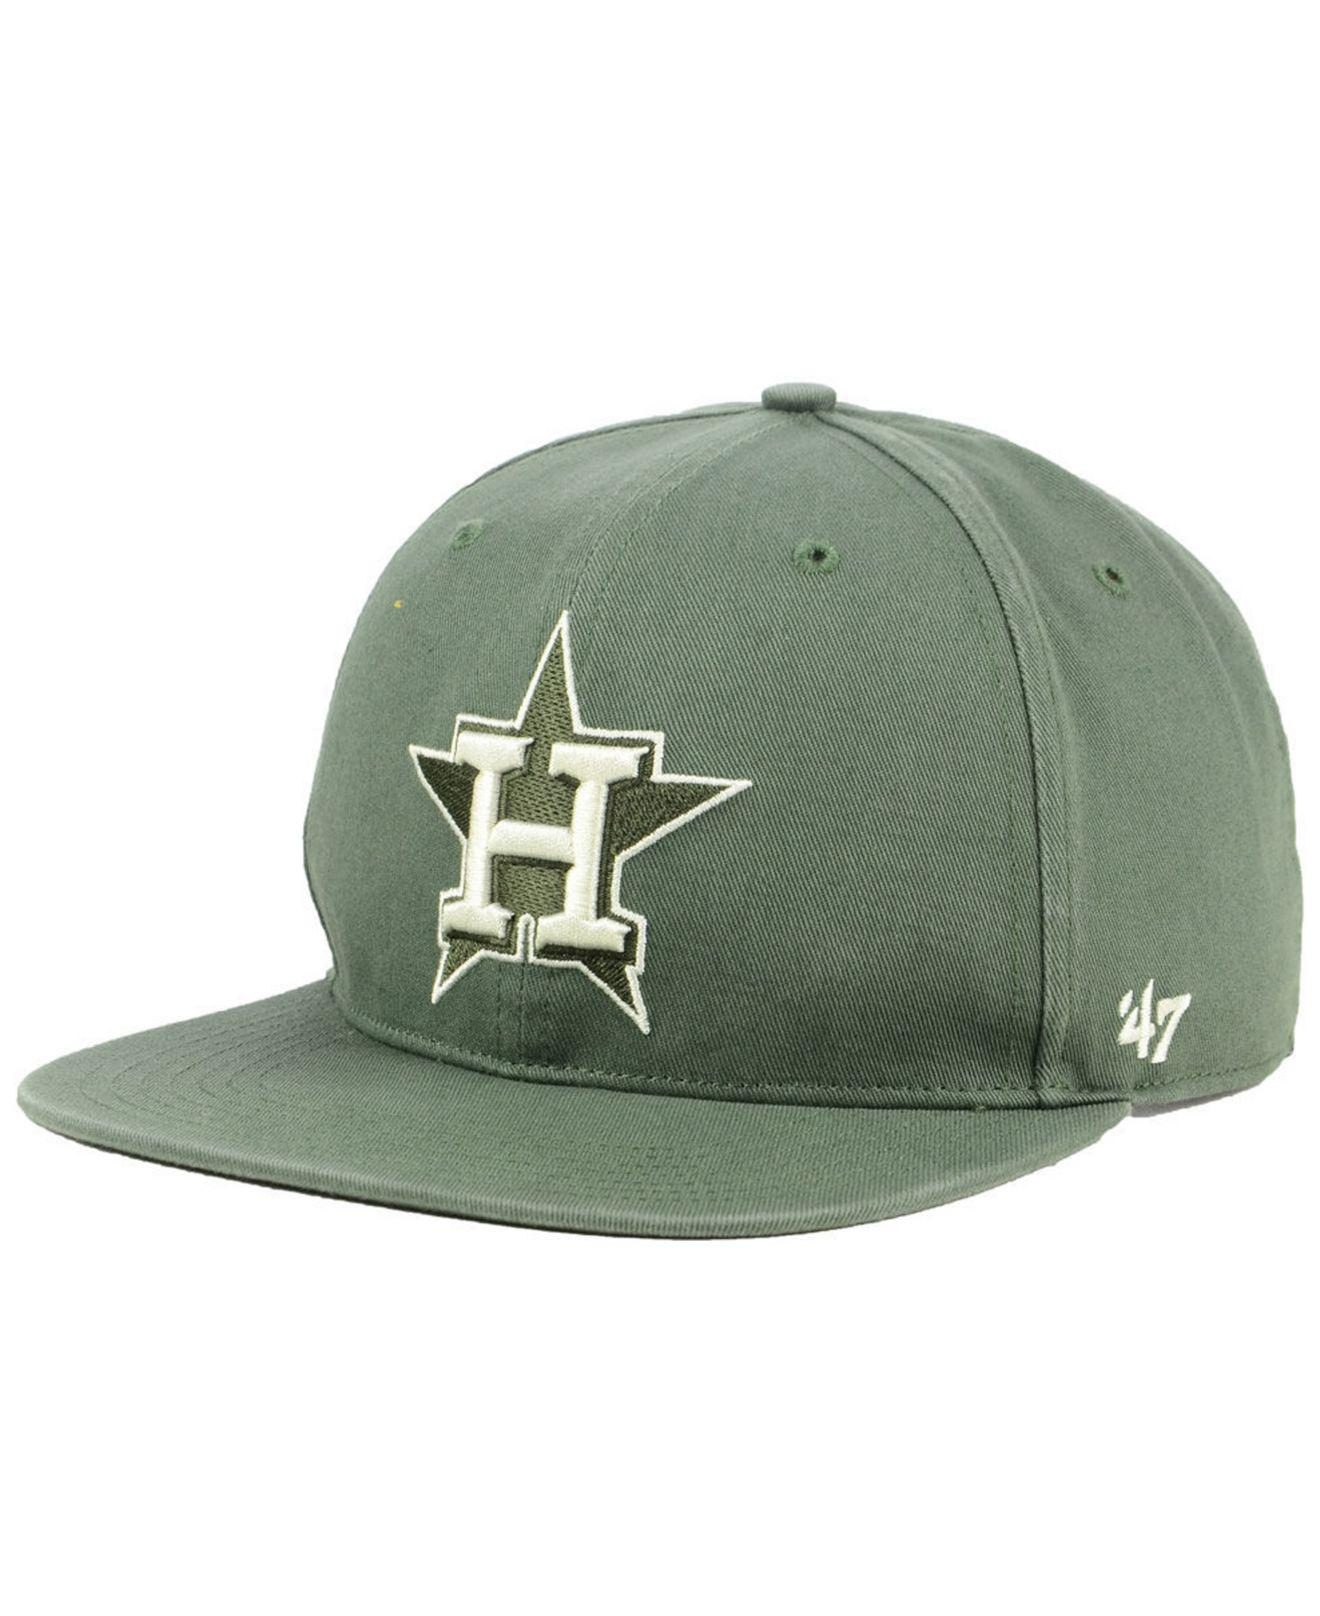 7a6fb8961a2 Lyst - 47 Brand Houston Astros Moss Snapback Cap in Green for Men